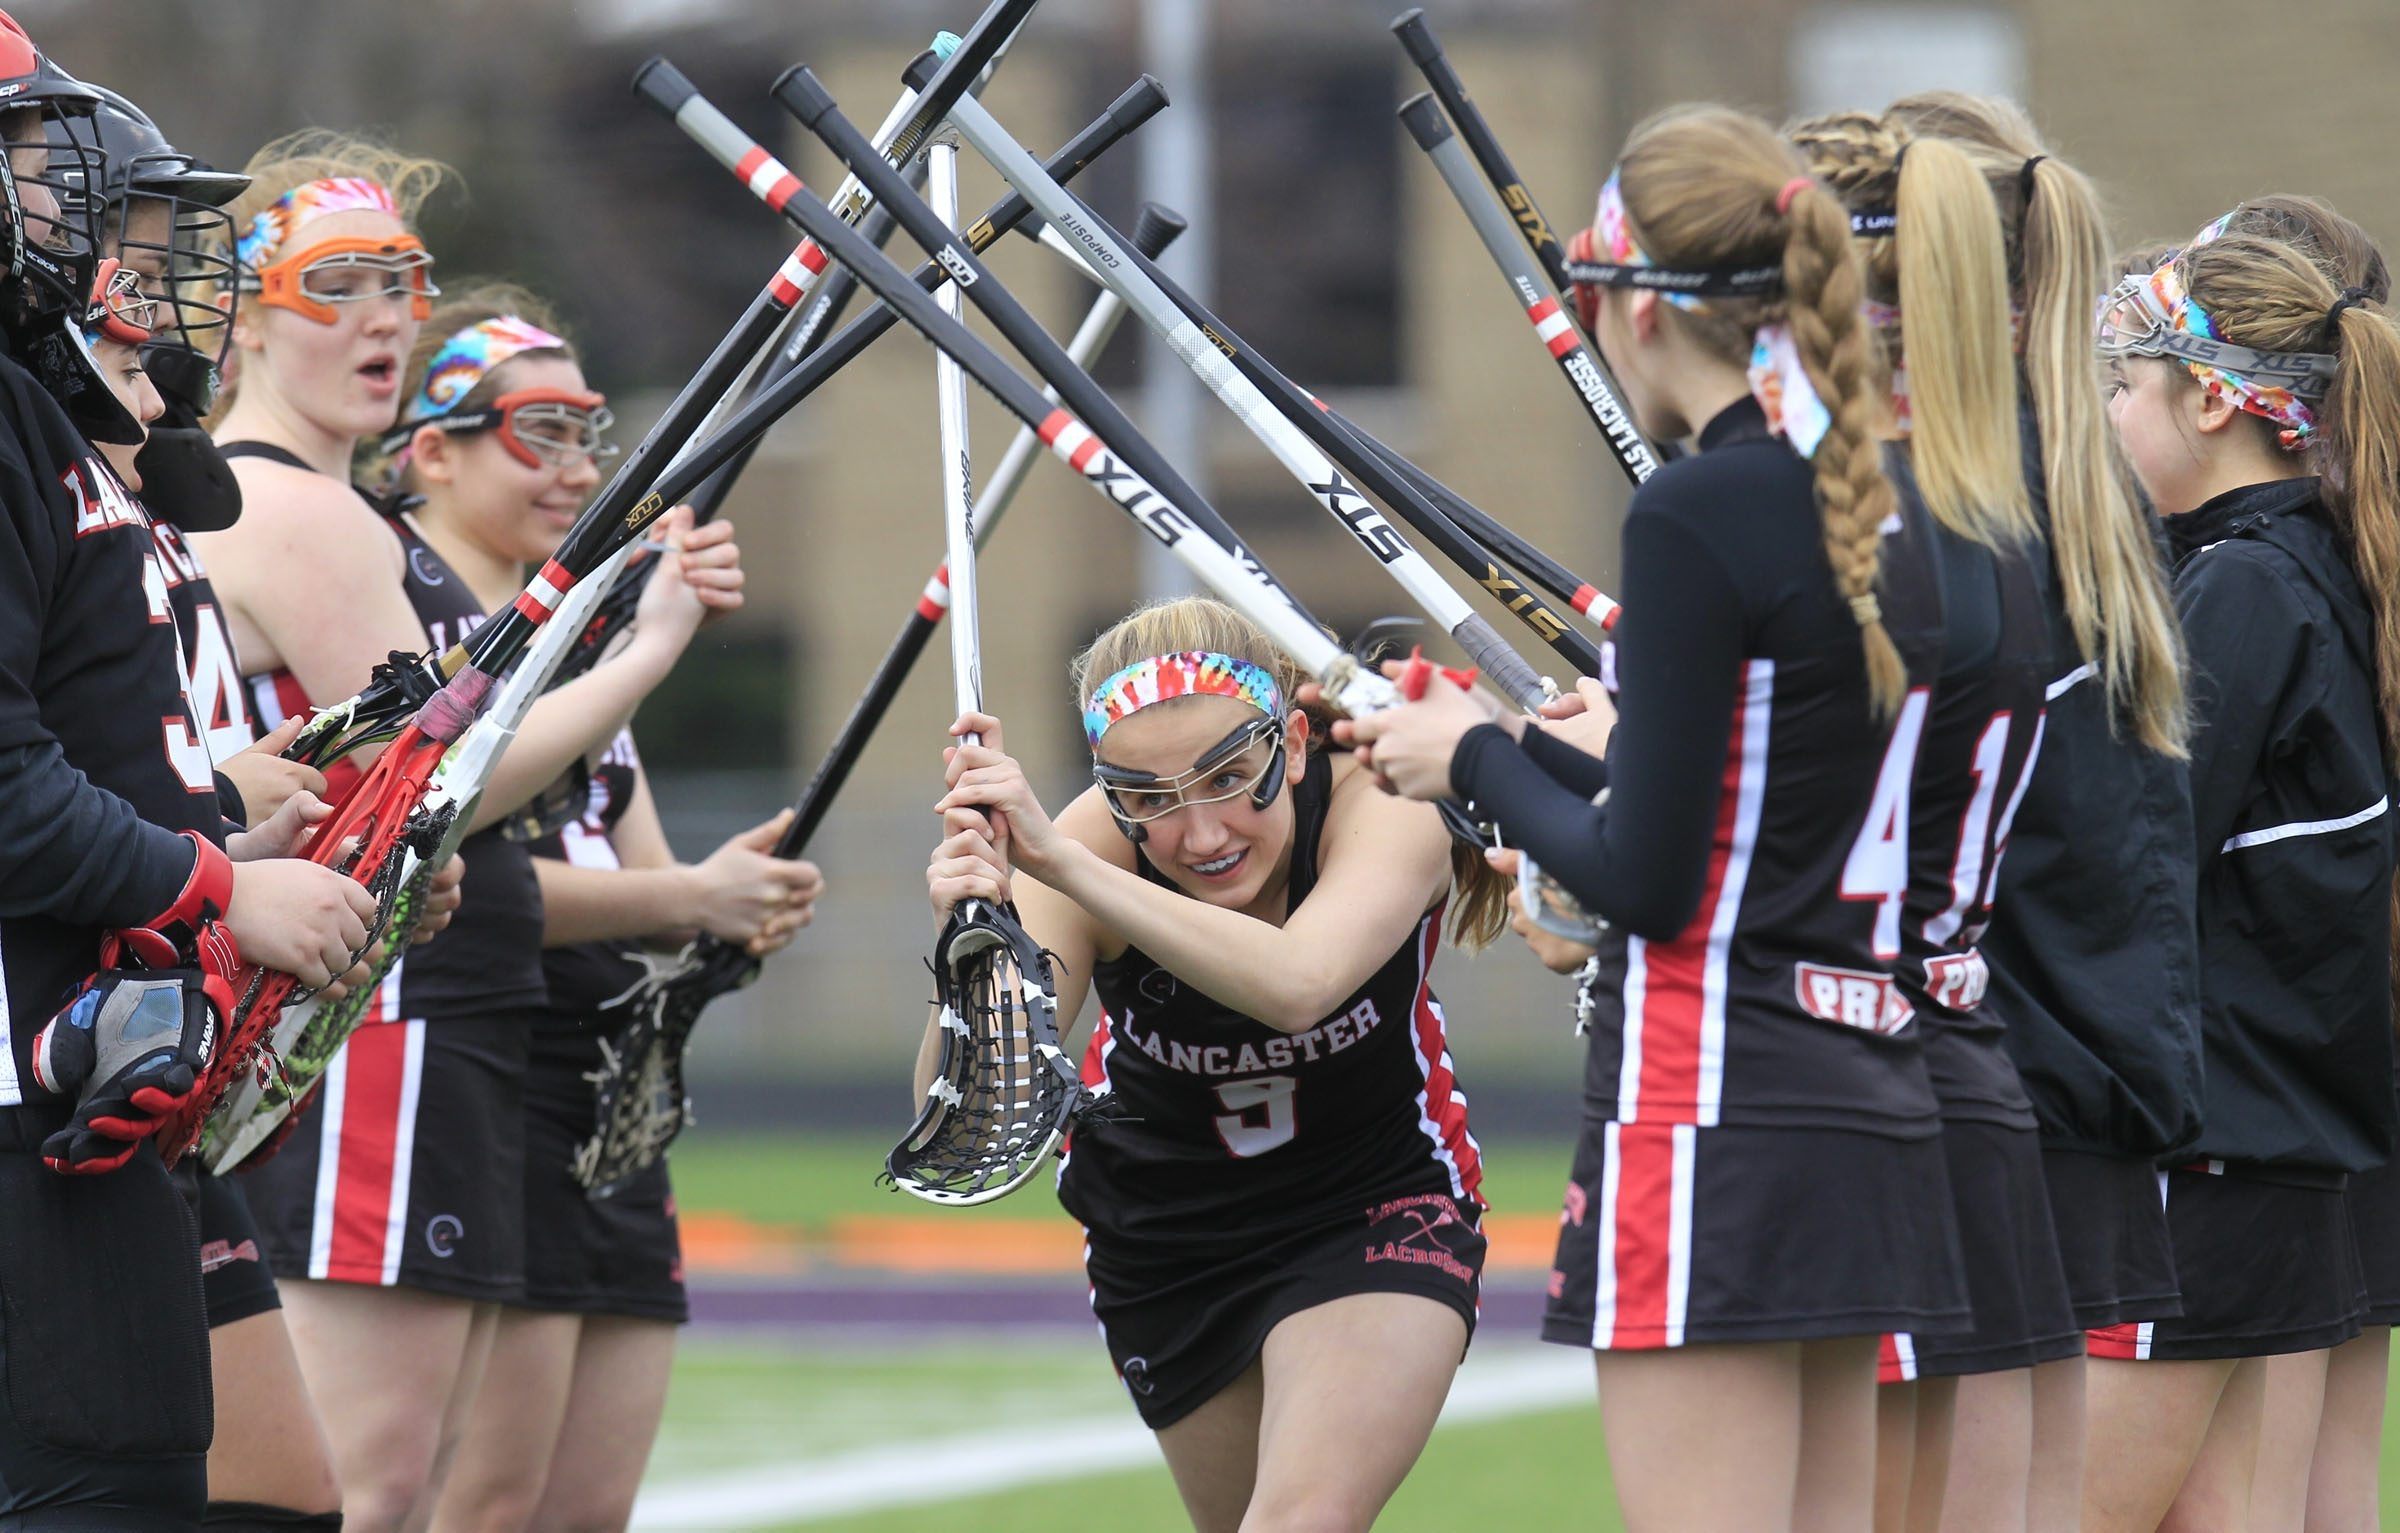 The Lancaster girls varsity lacrosse team at a recent game against Hamburg.(Harry Scull Jr./Buffalo News)